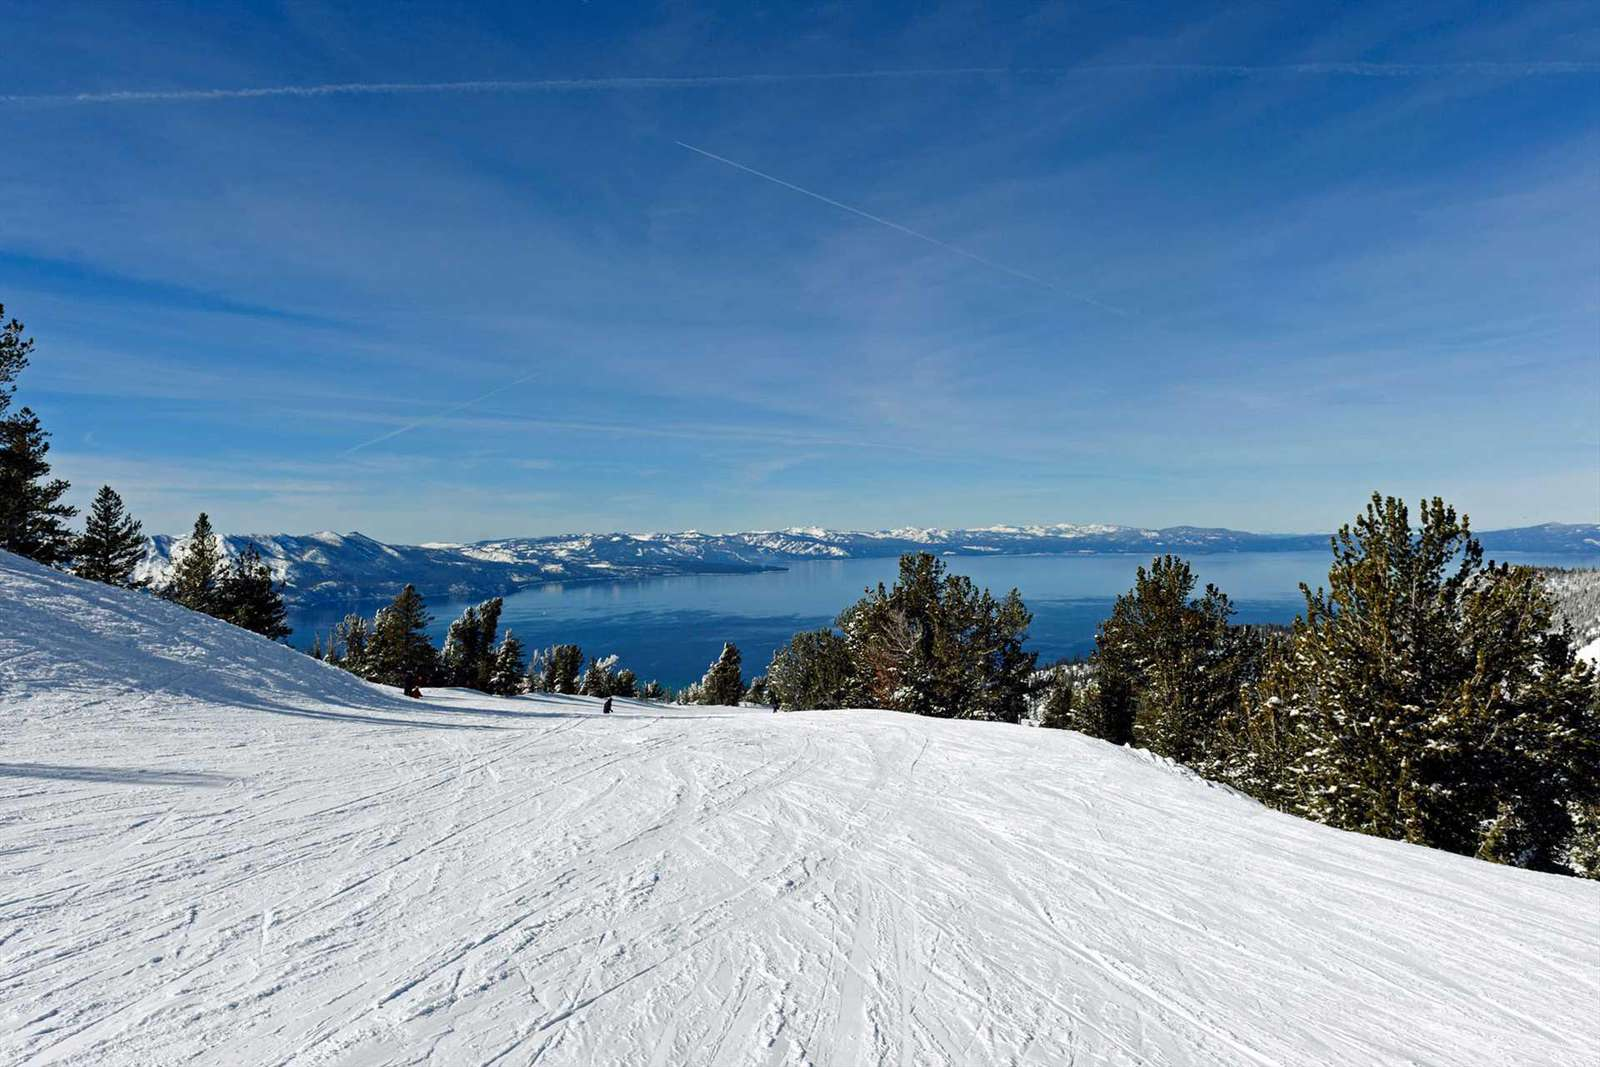 Skiing a Lake Tahoe